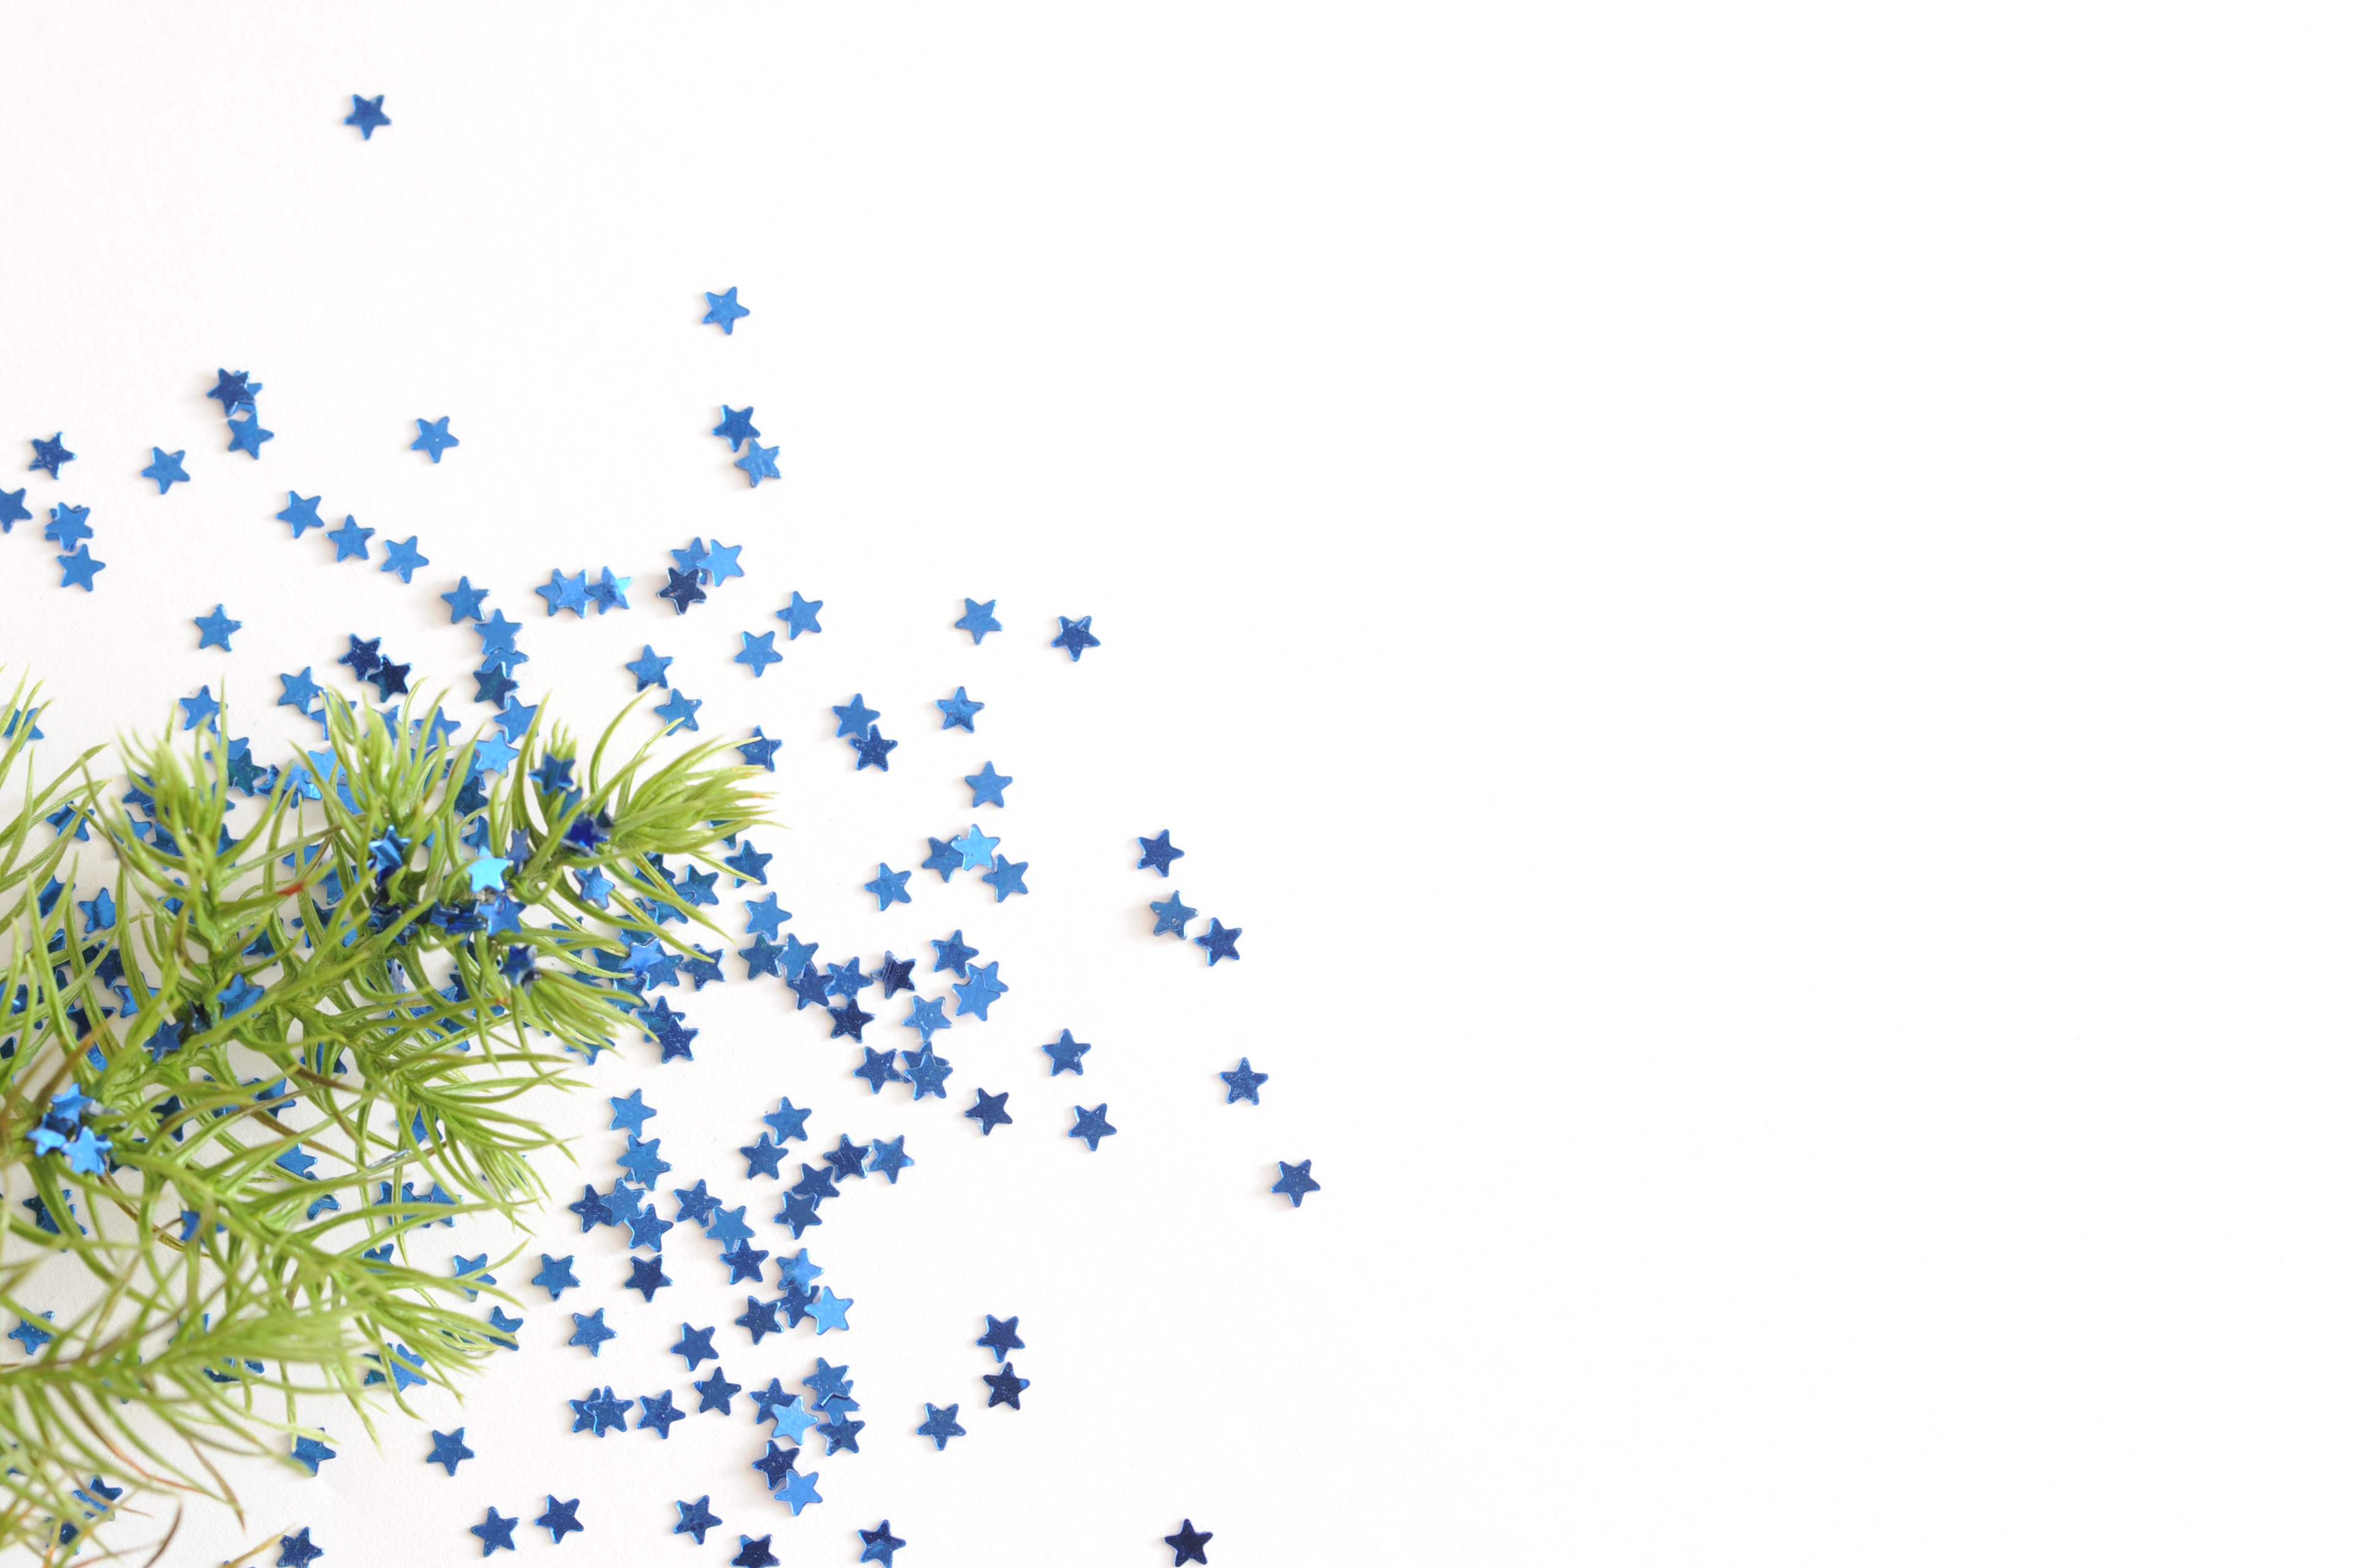 image of evergreen sprig and blue star confetti on white | freebie